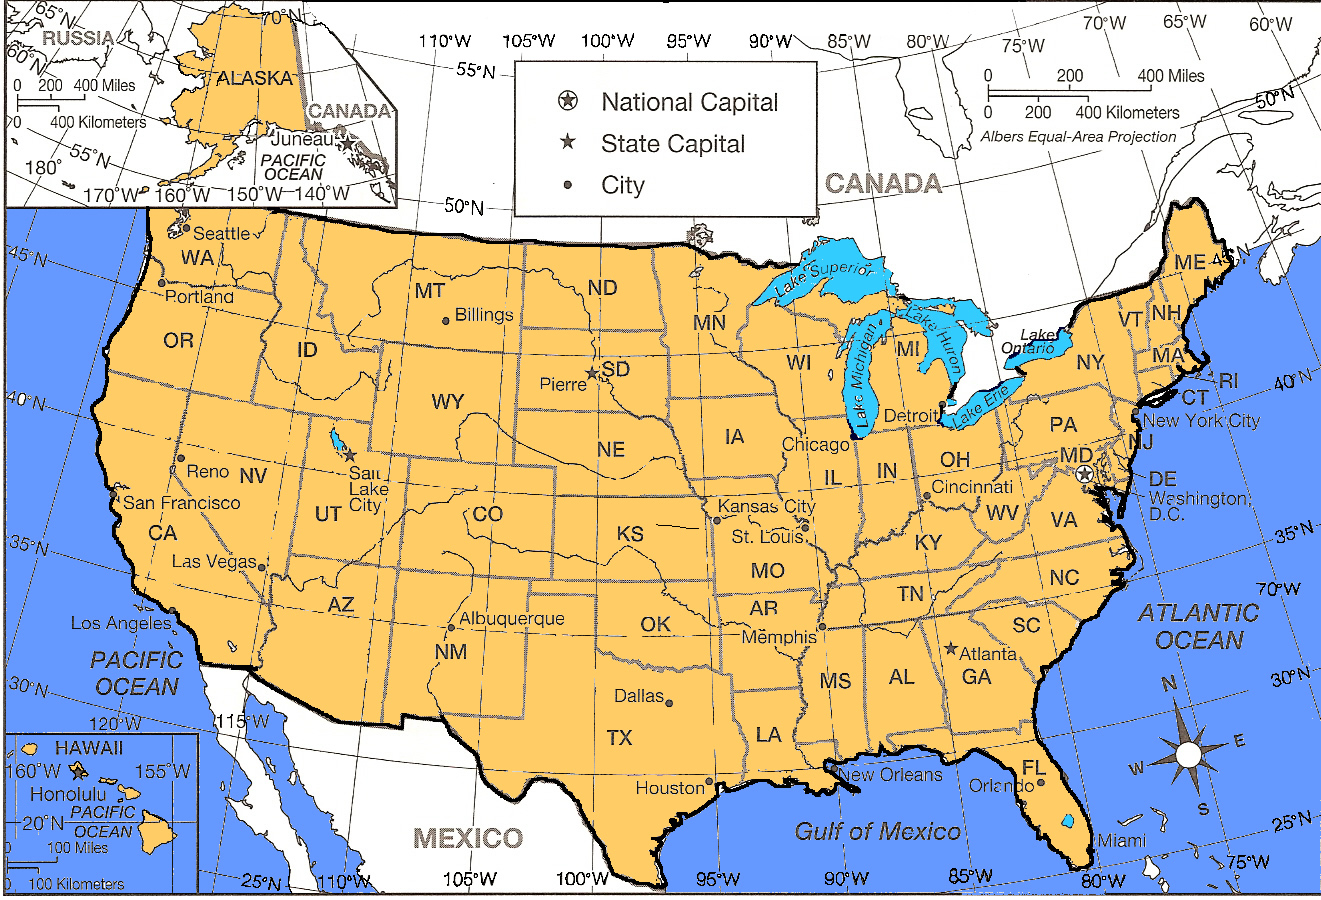 Which Four State Capitals Are Located Between 60 West And